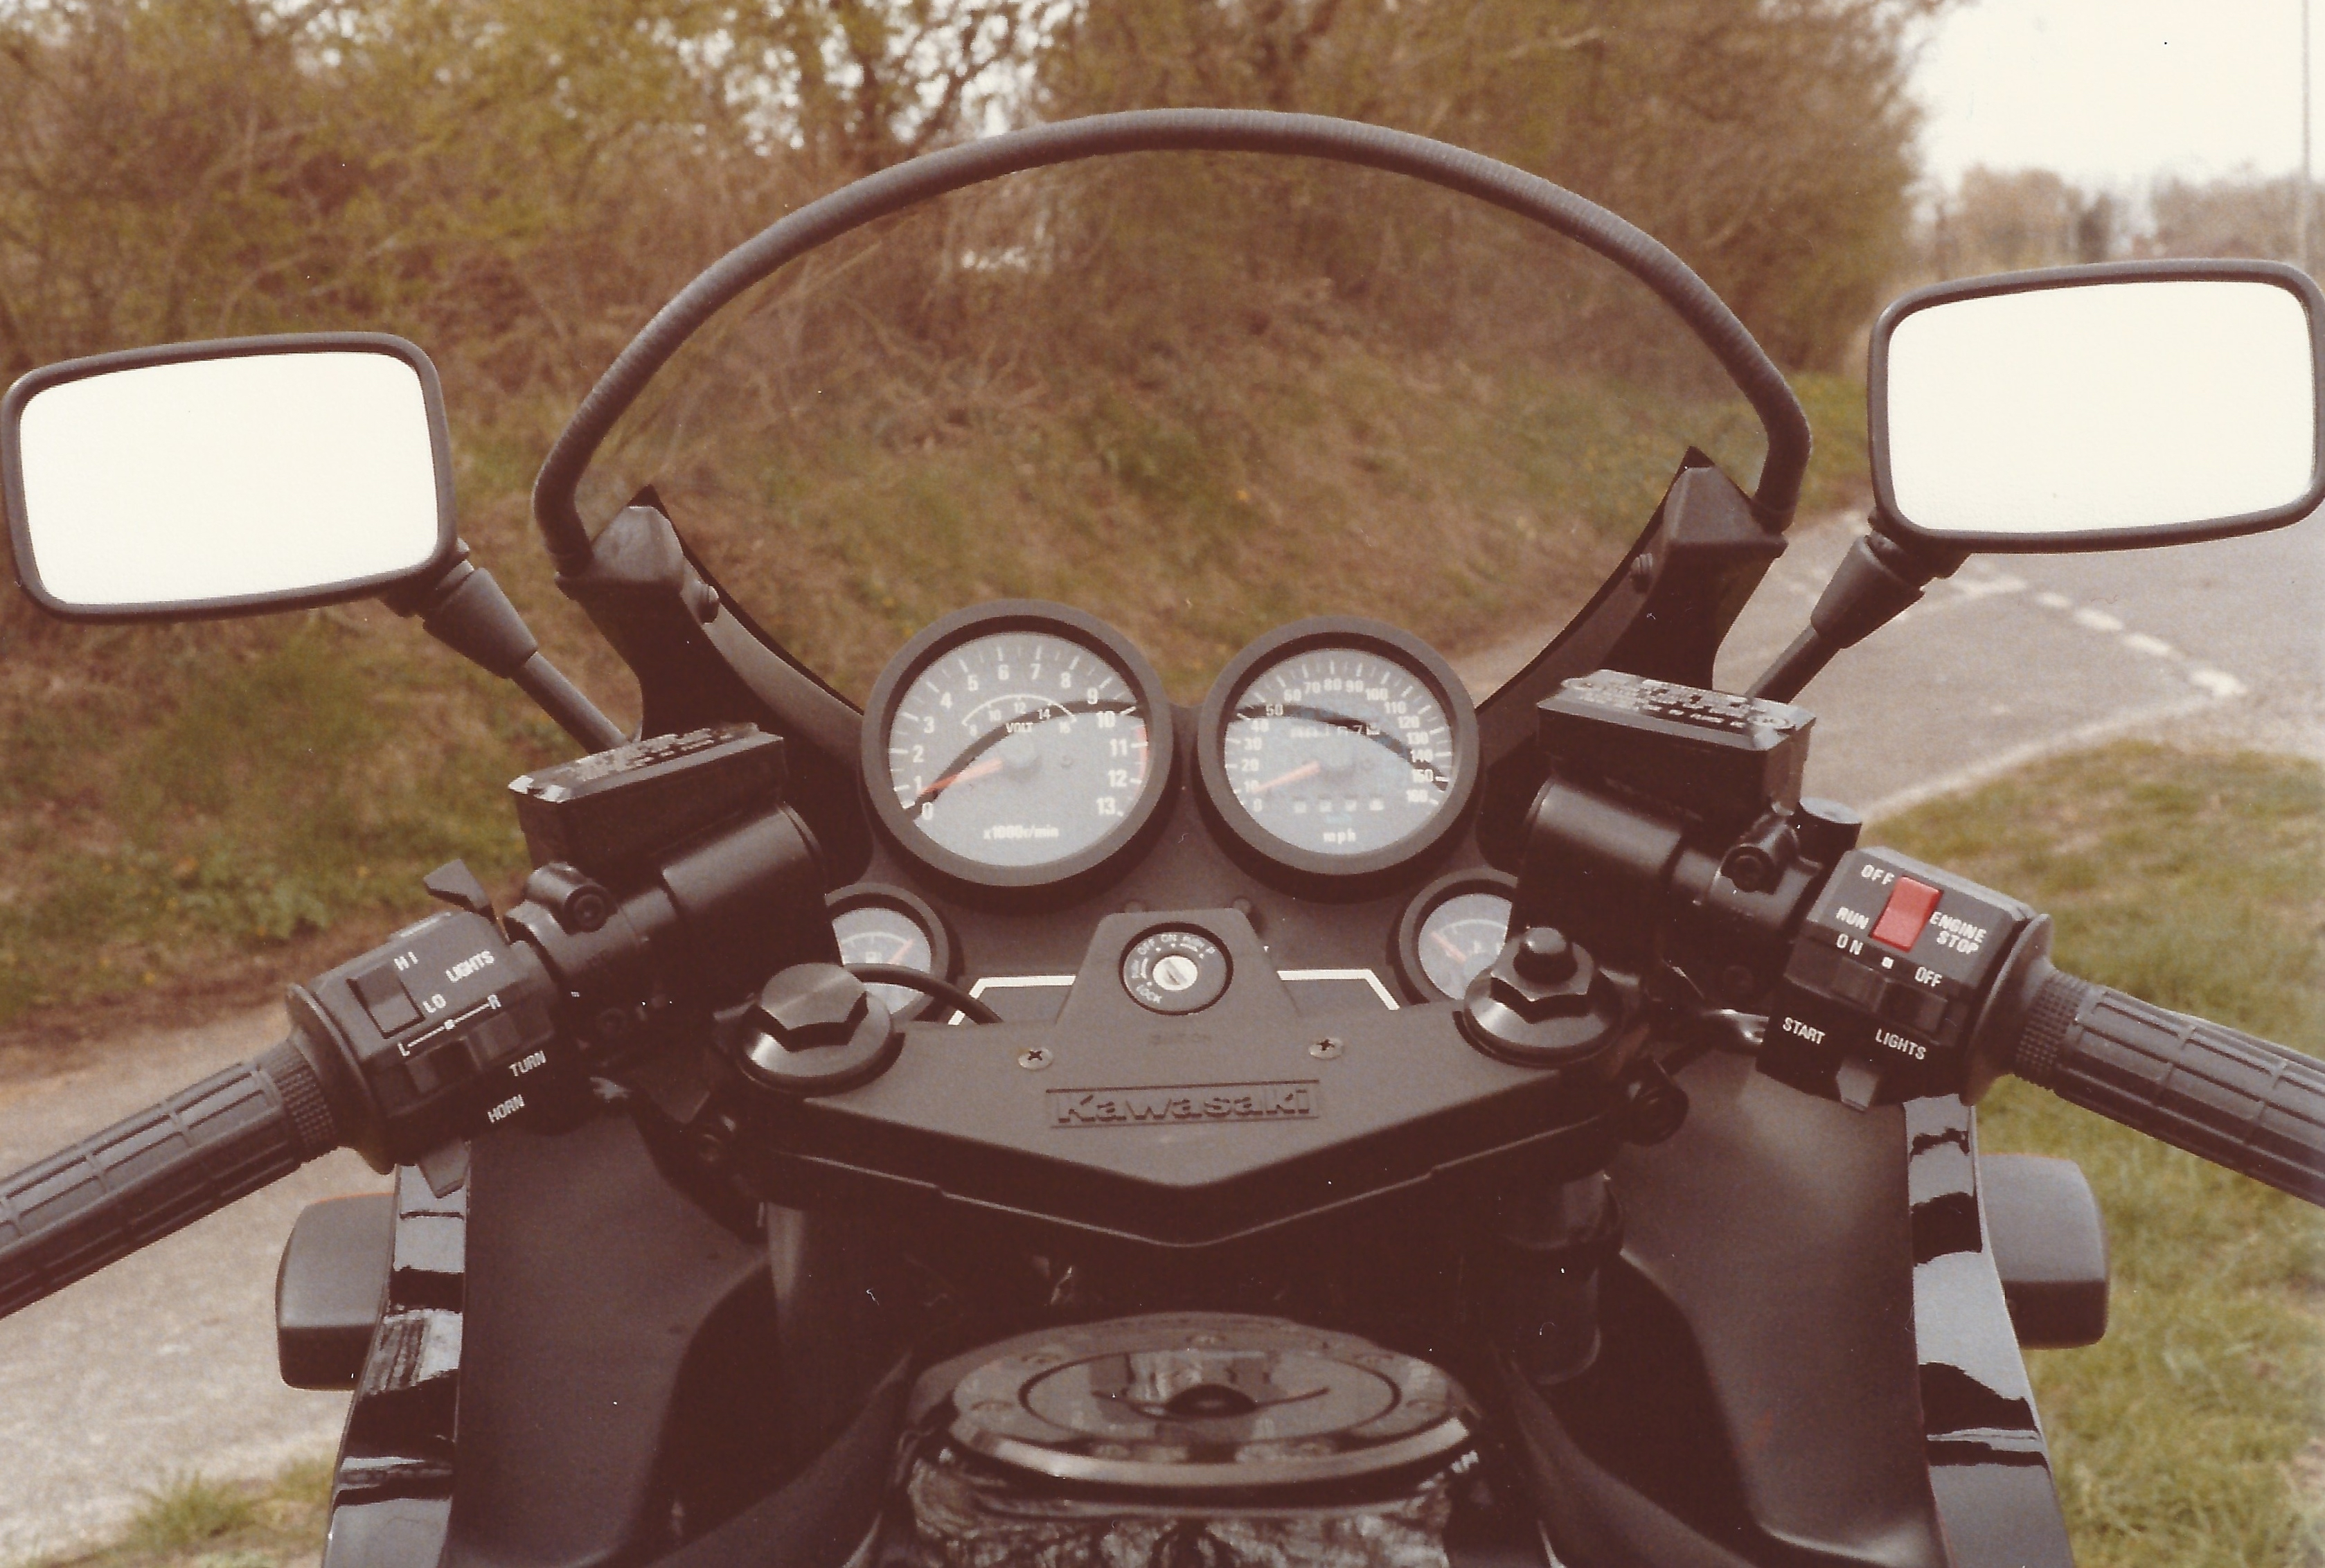 The dials of a Kawasaki GPz750R motorcycle